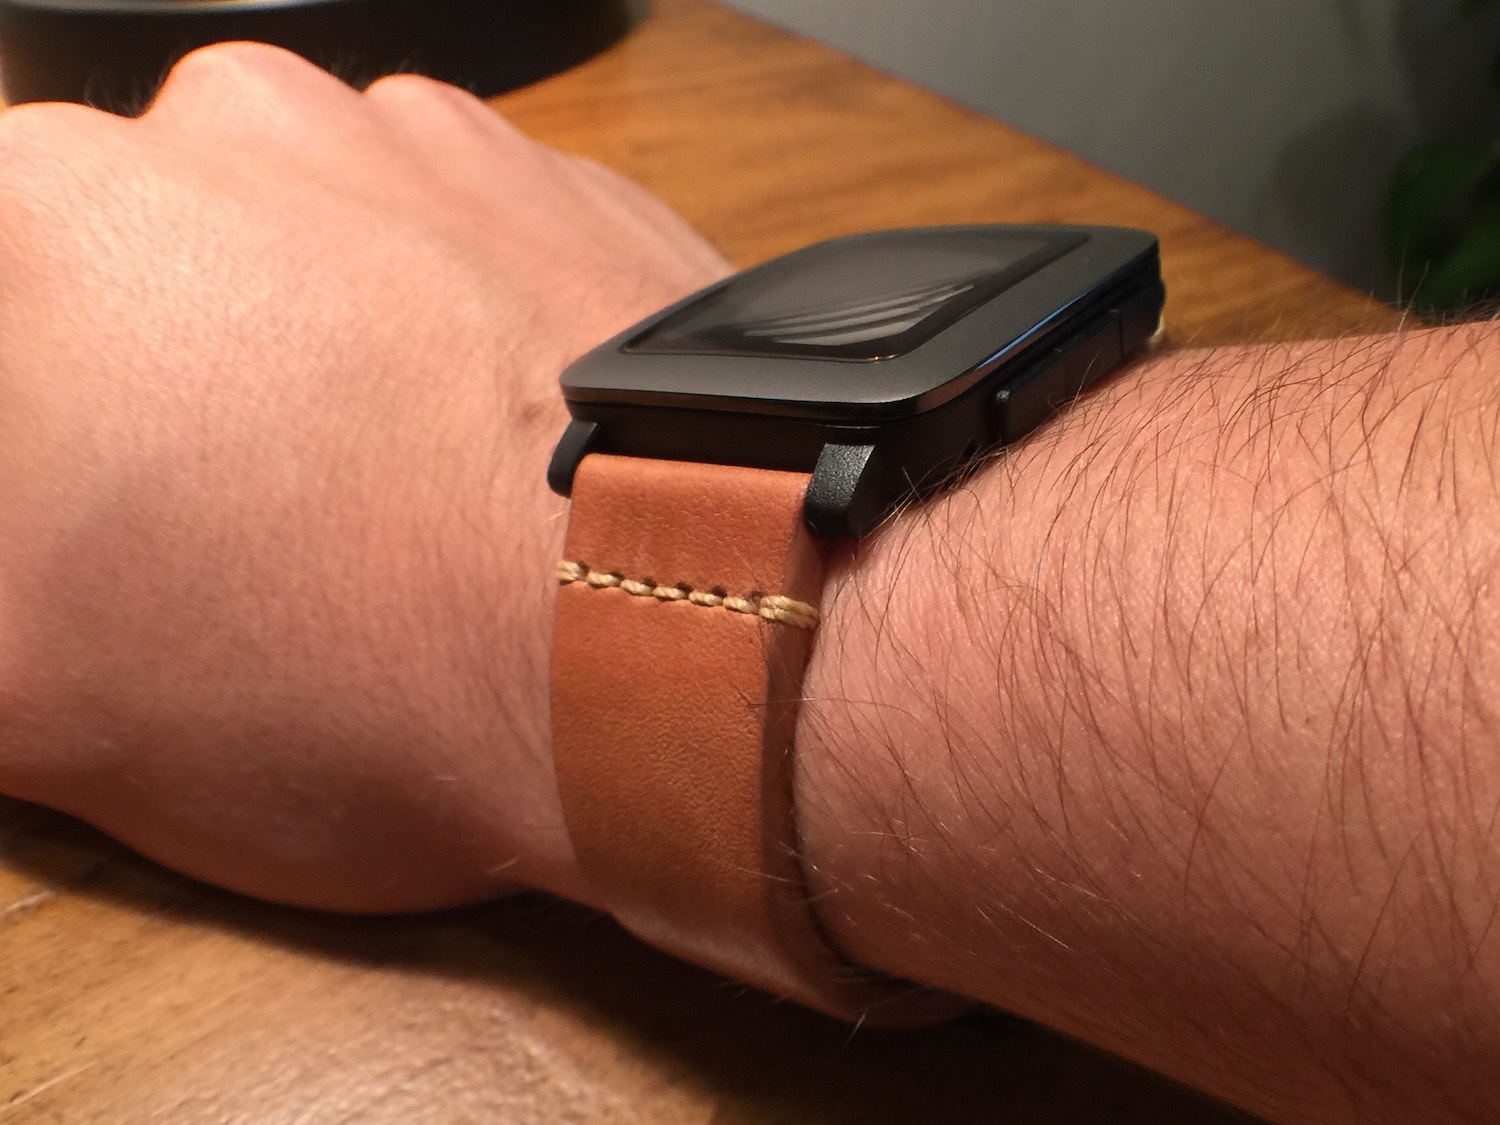 Quick release pebble time